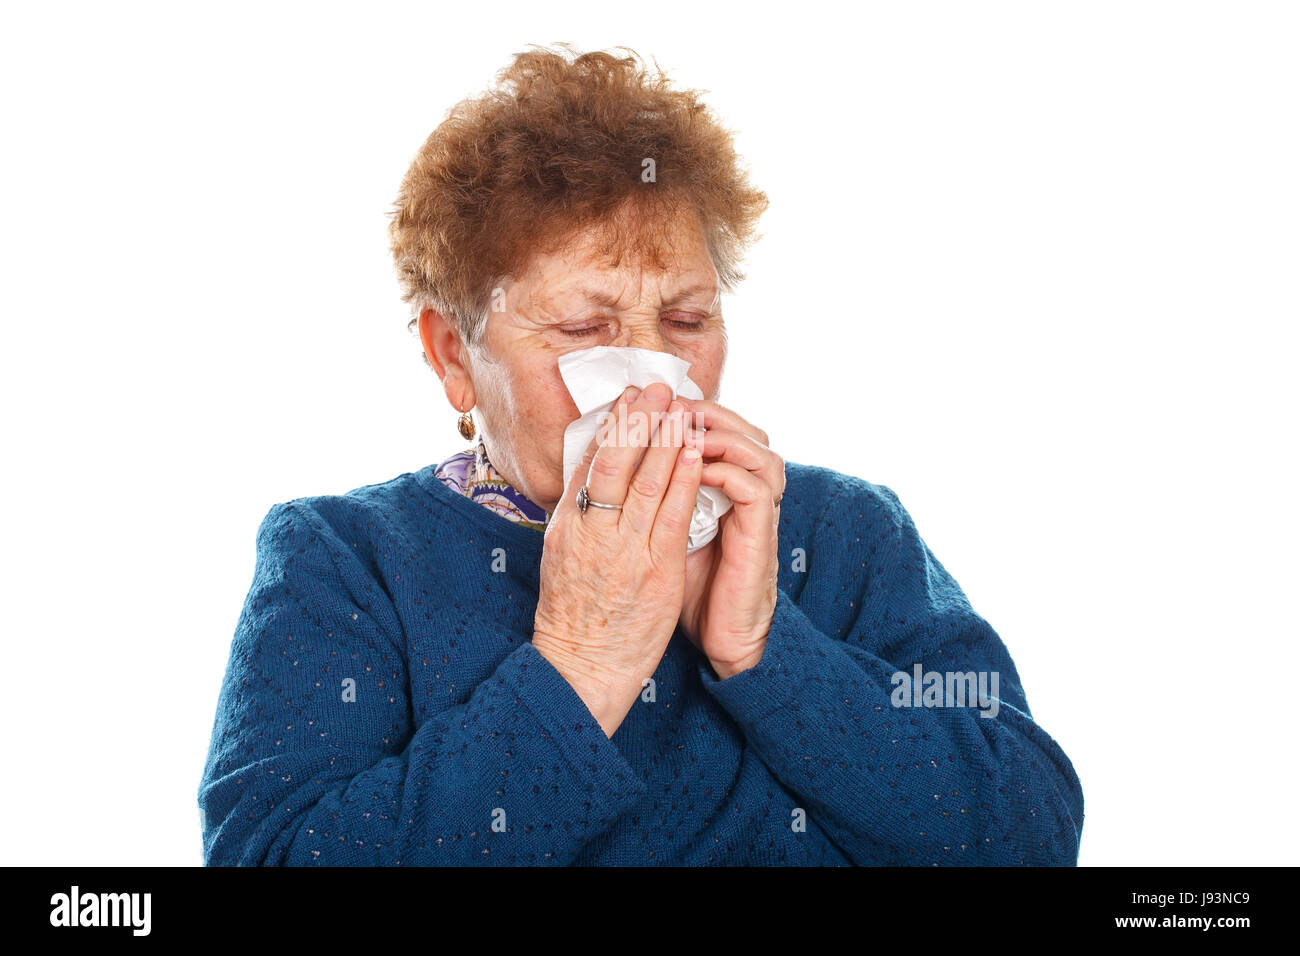 Picture of an elderly woman blowing her nose - isolated background - Stock Image